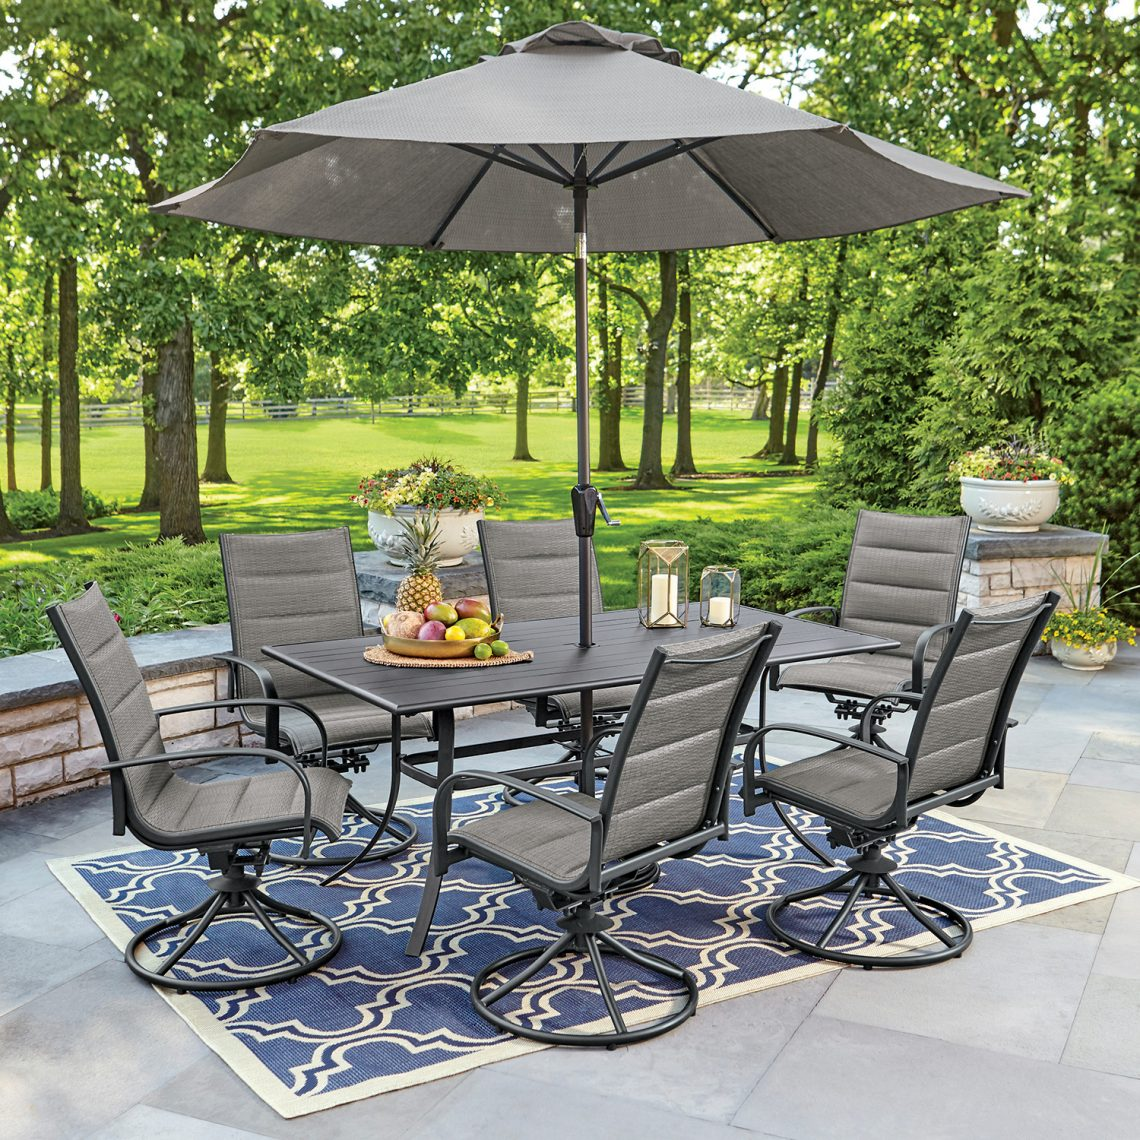 At Hortons Home Lighting In La Grange, We Offer A Variety Of Patio Sets,  Bistro Sets, High Top Sets, Benches, And Outdoor Decor. If Youu0027re  Redesigning Your ...